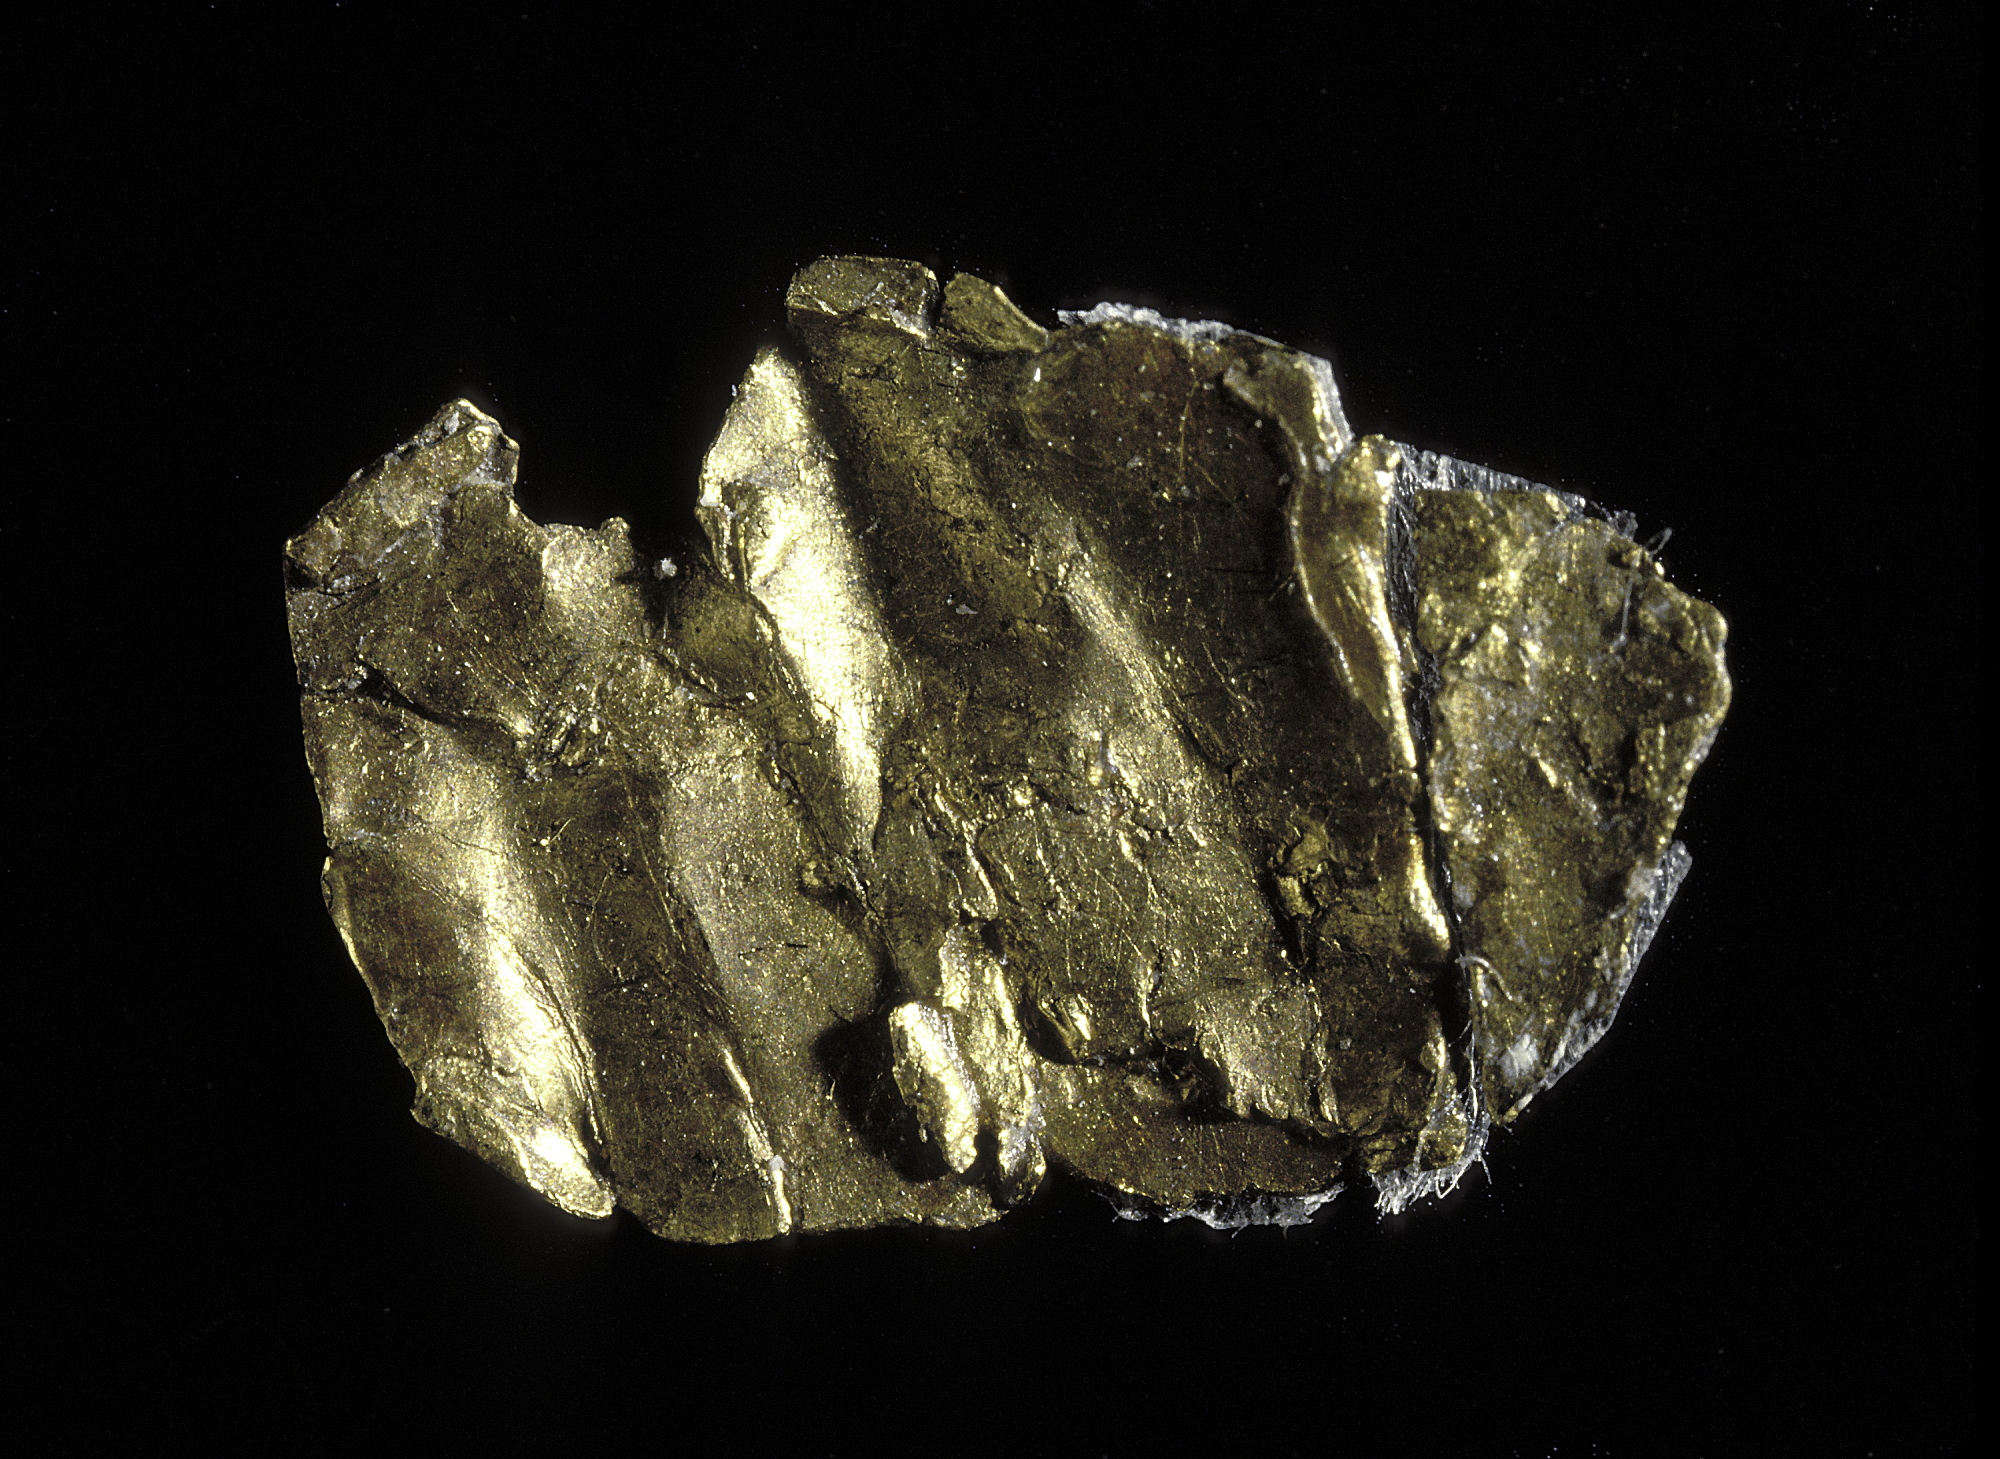 This small piece of yellow metal is believed to be the first piece of gold discovered in 1848 at Sutter's. Smithsonian Museum of American History